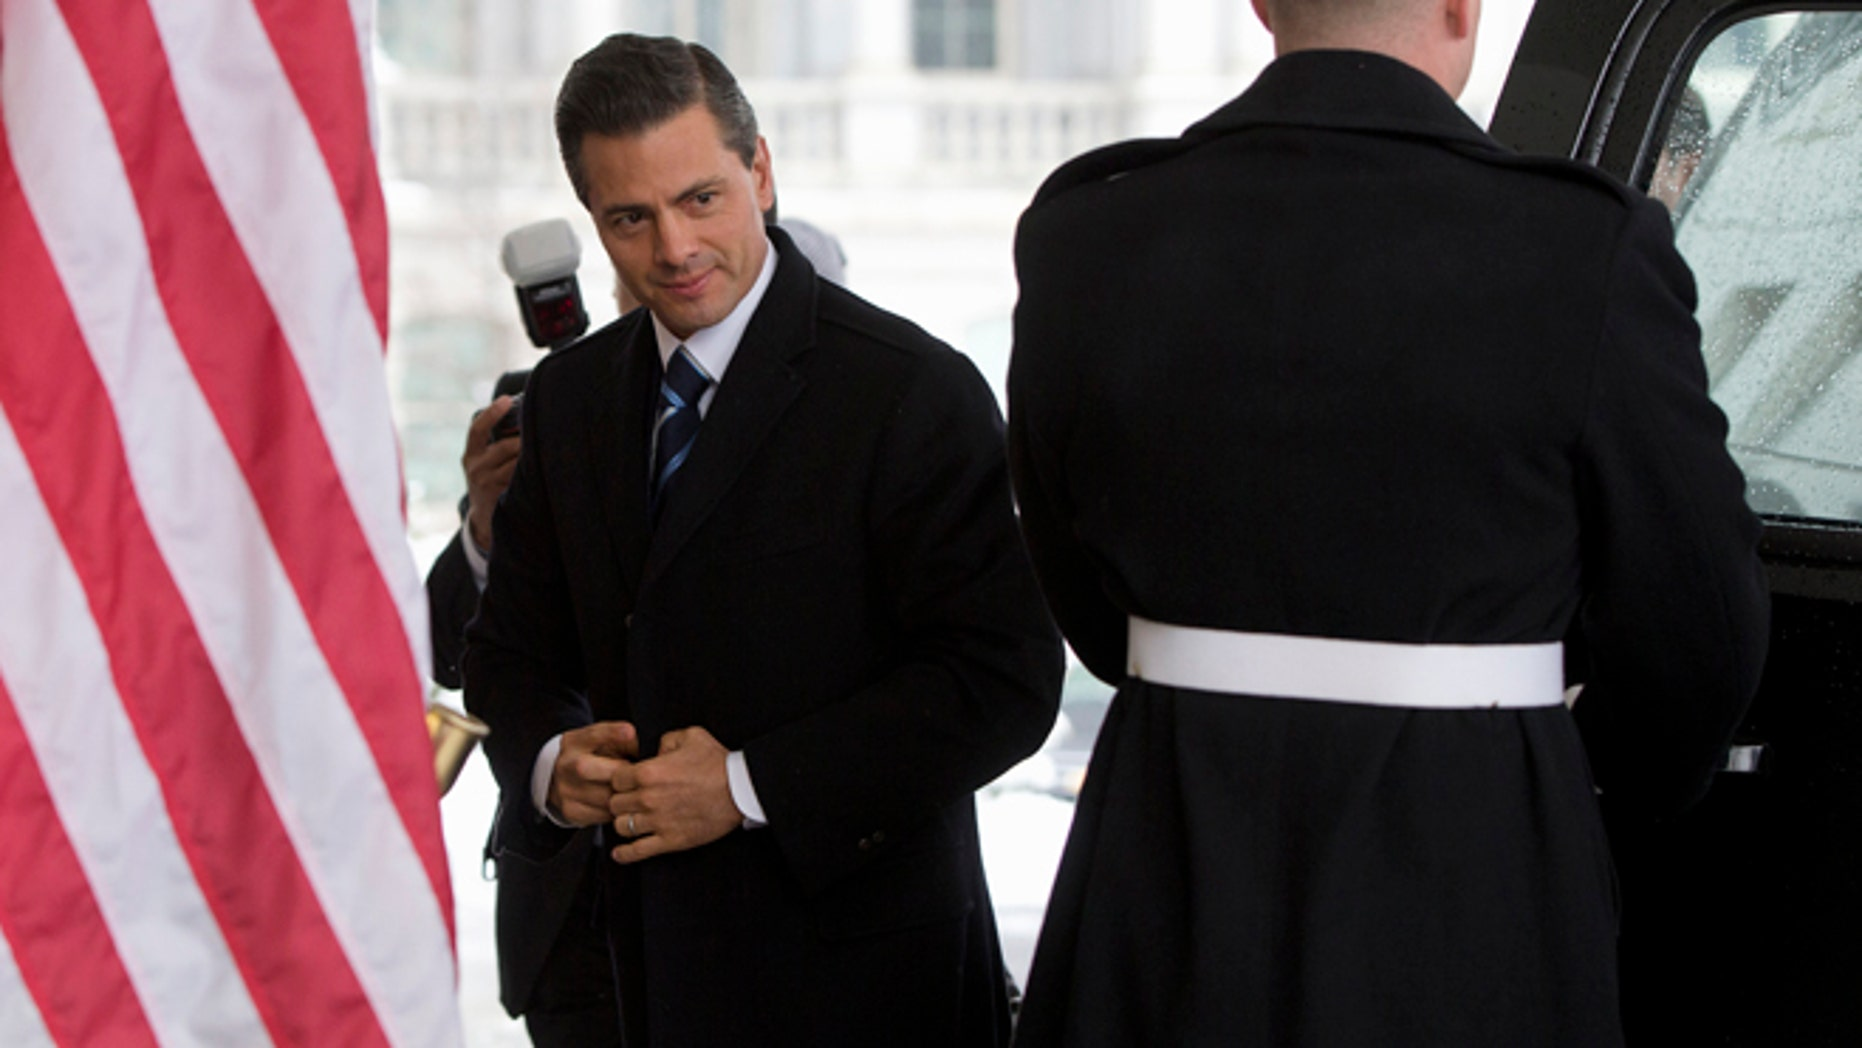 In this Tuesday, Jan. 6, 2015 photo Mexico's President Enrique Pena Nieto arrives at the White House in Washington for meetings with President Barack Obama.